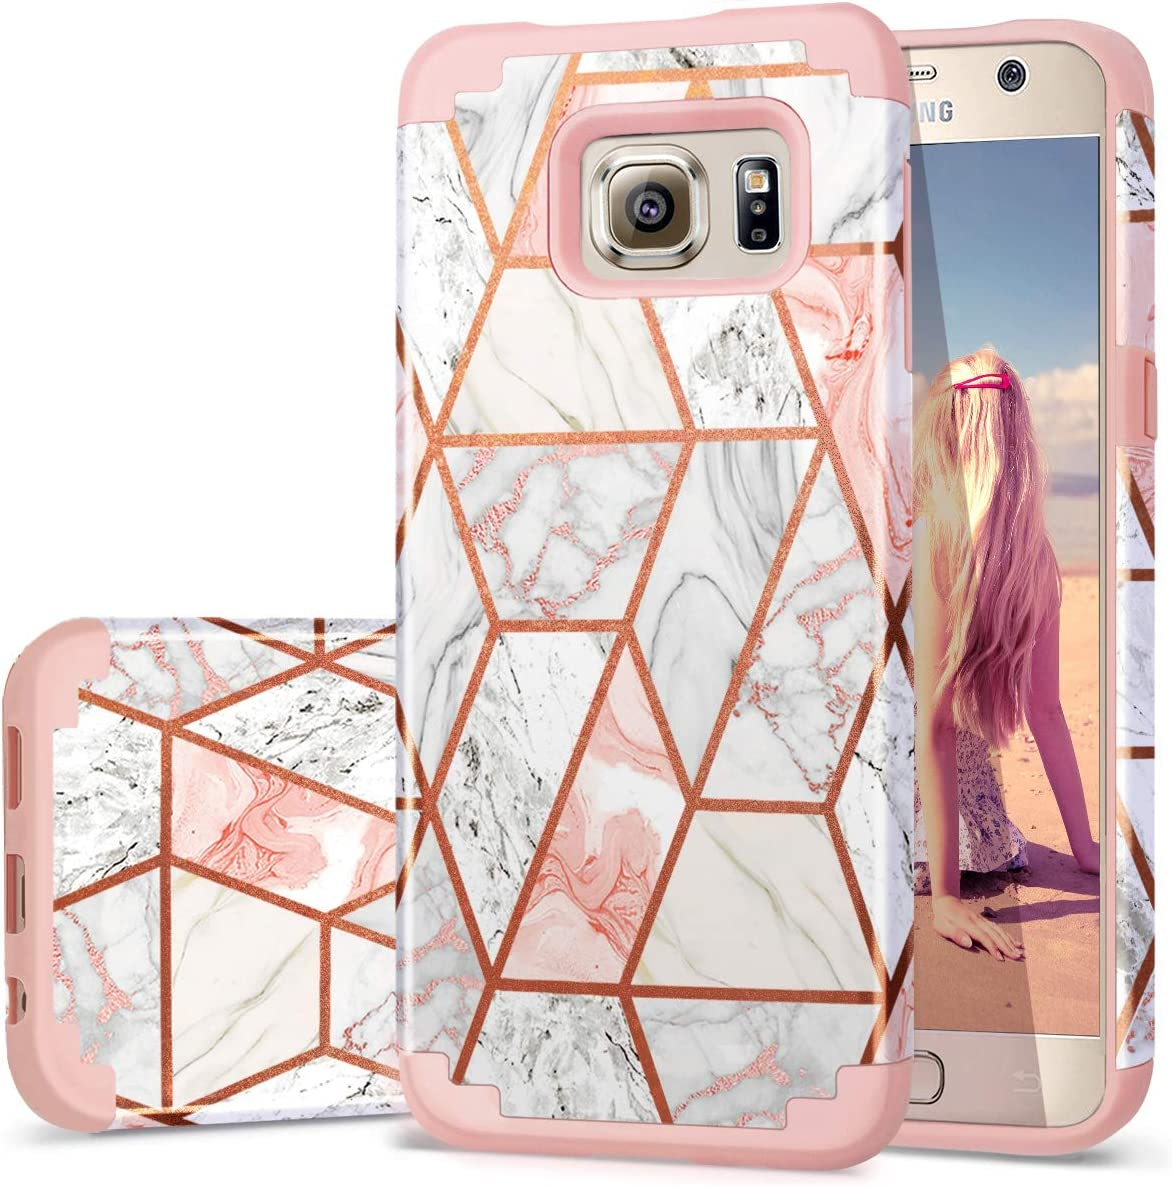 Fingic Samsung Galaxy S6 Case Rose Gold Marble Design Shiny Glitter Bumper Hybrid Hard PC Soft Rubber Silicone Cover Anti-Scratch Shockproof Protective Case for Galaxy S6 Case (2015) - Rose Gold